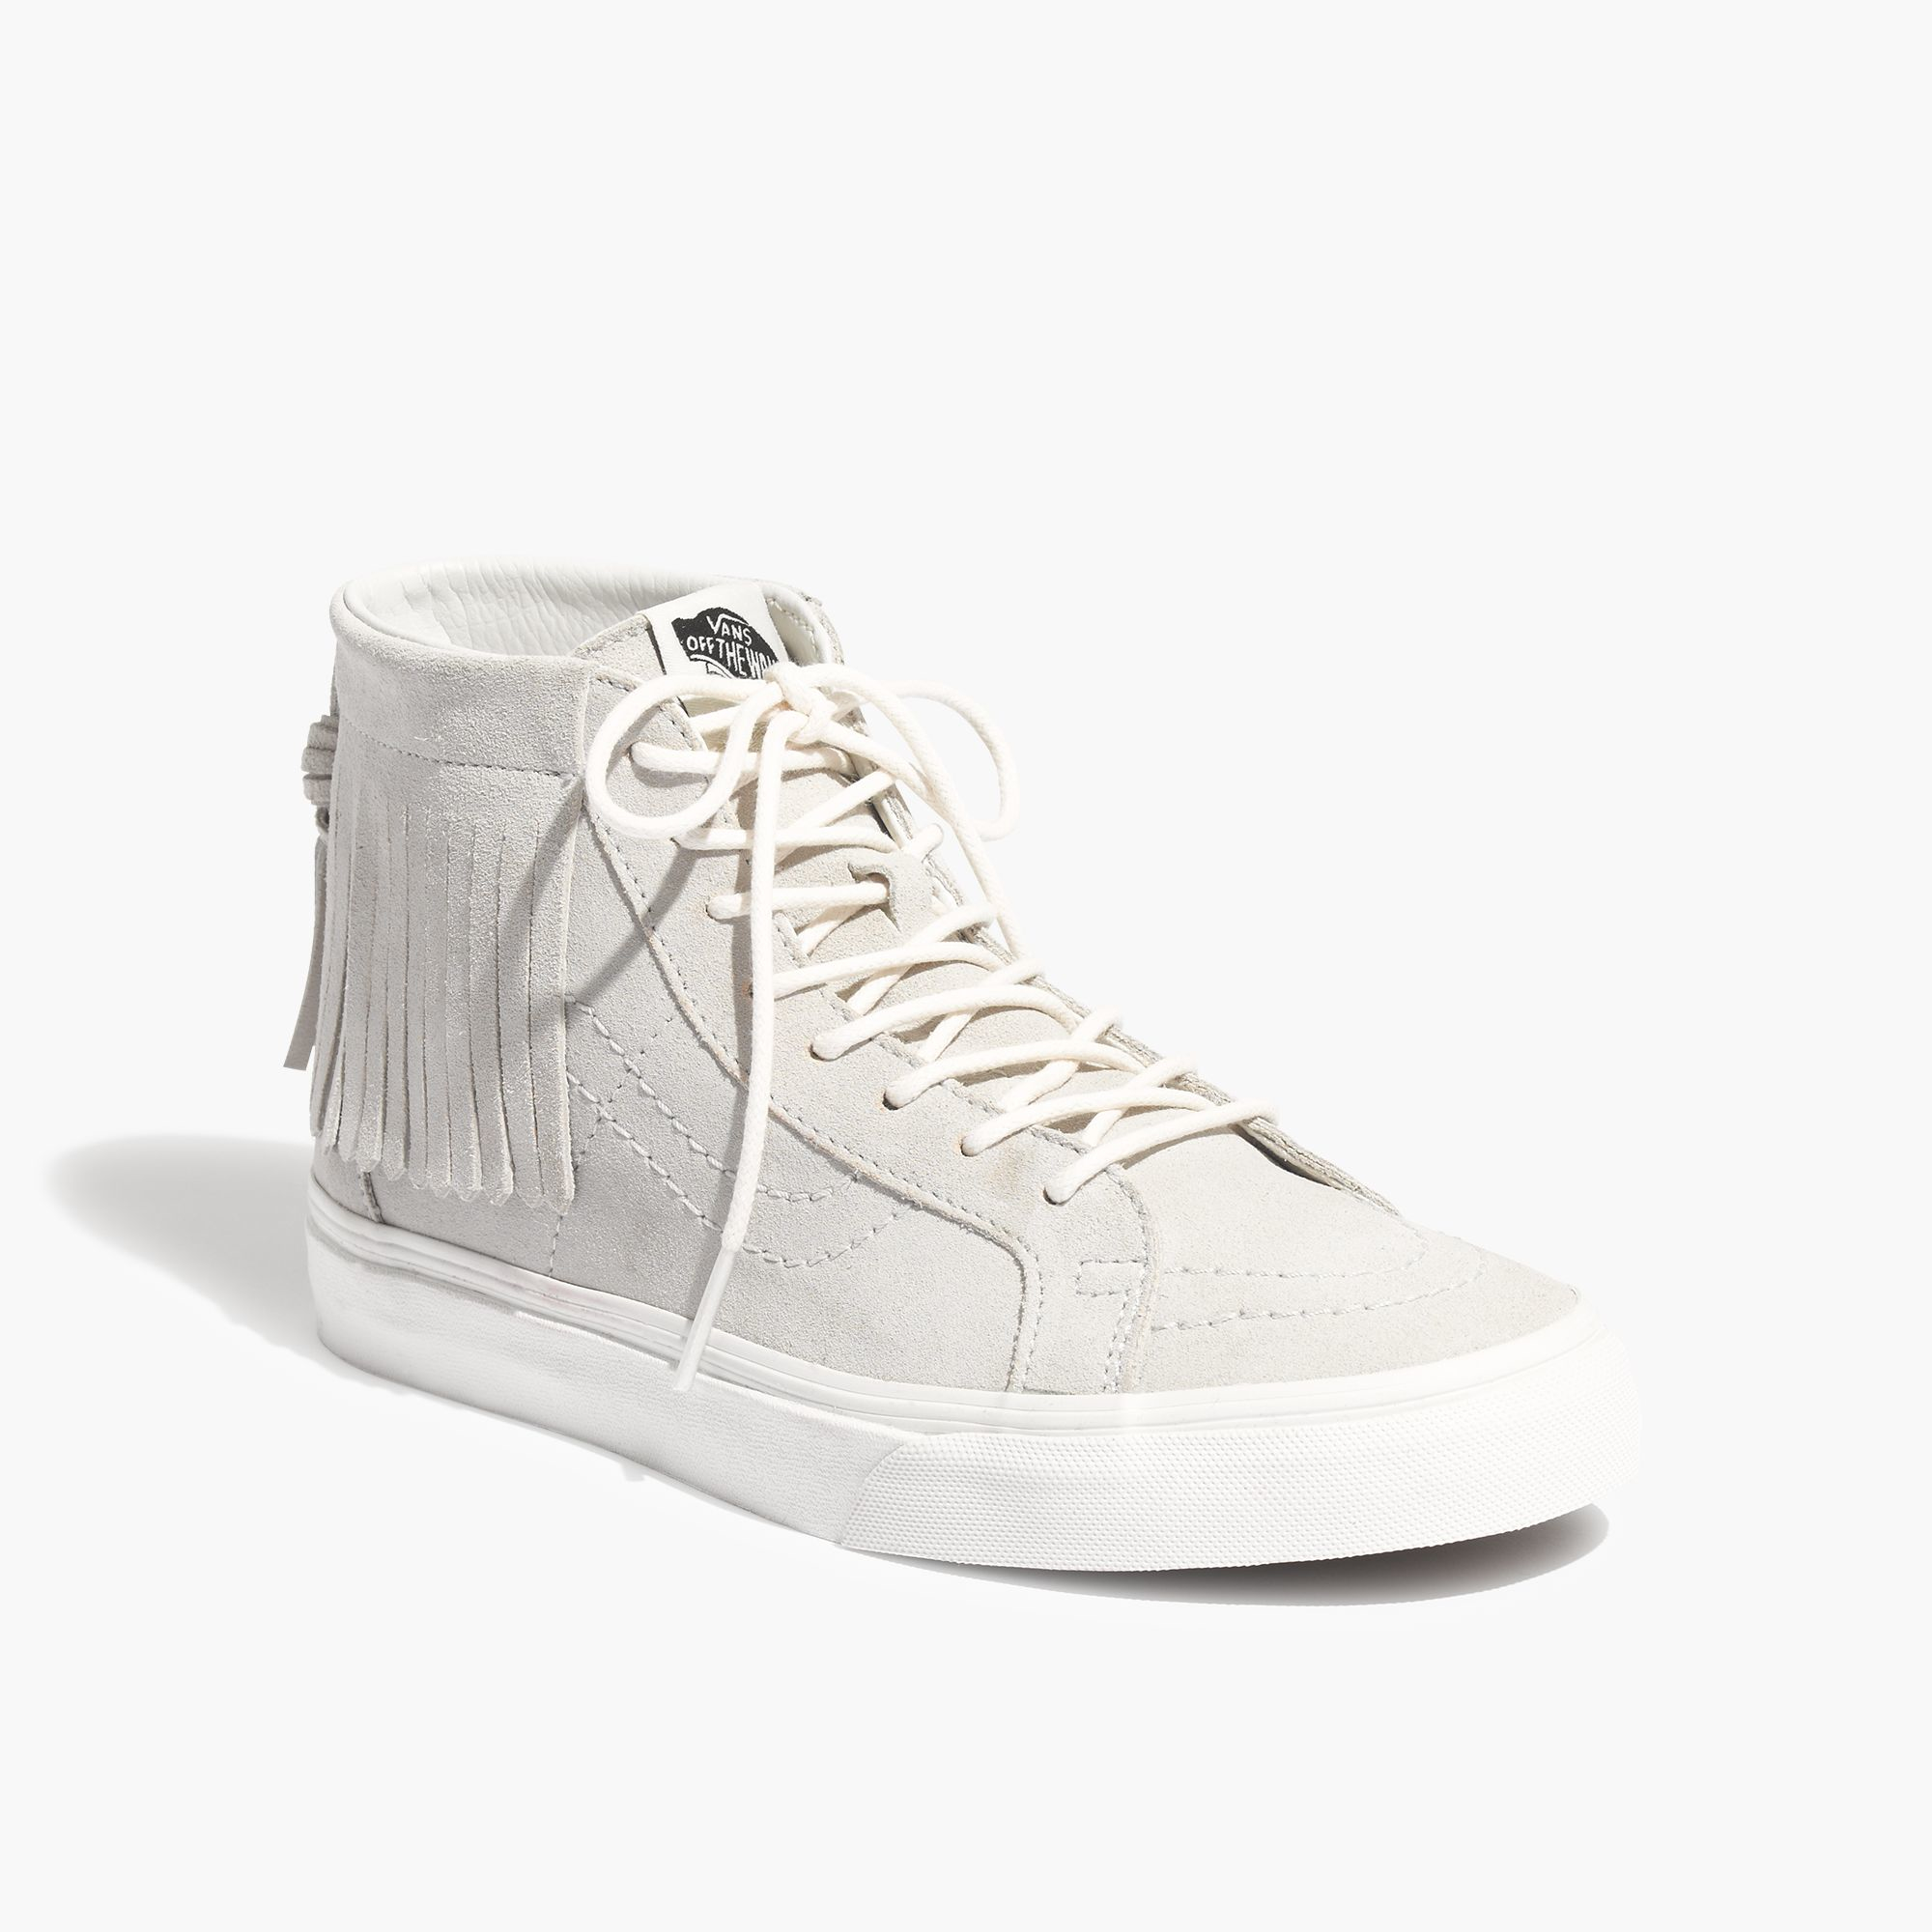 Lyst - Madewell Vans® Sk8-hi Moccasin High-top Sneakers in ...